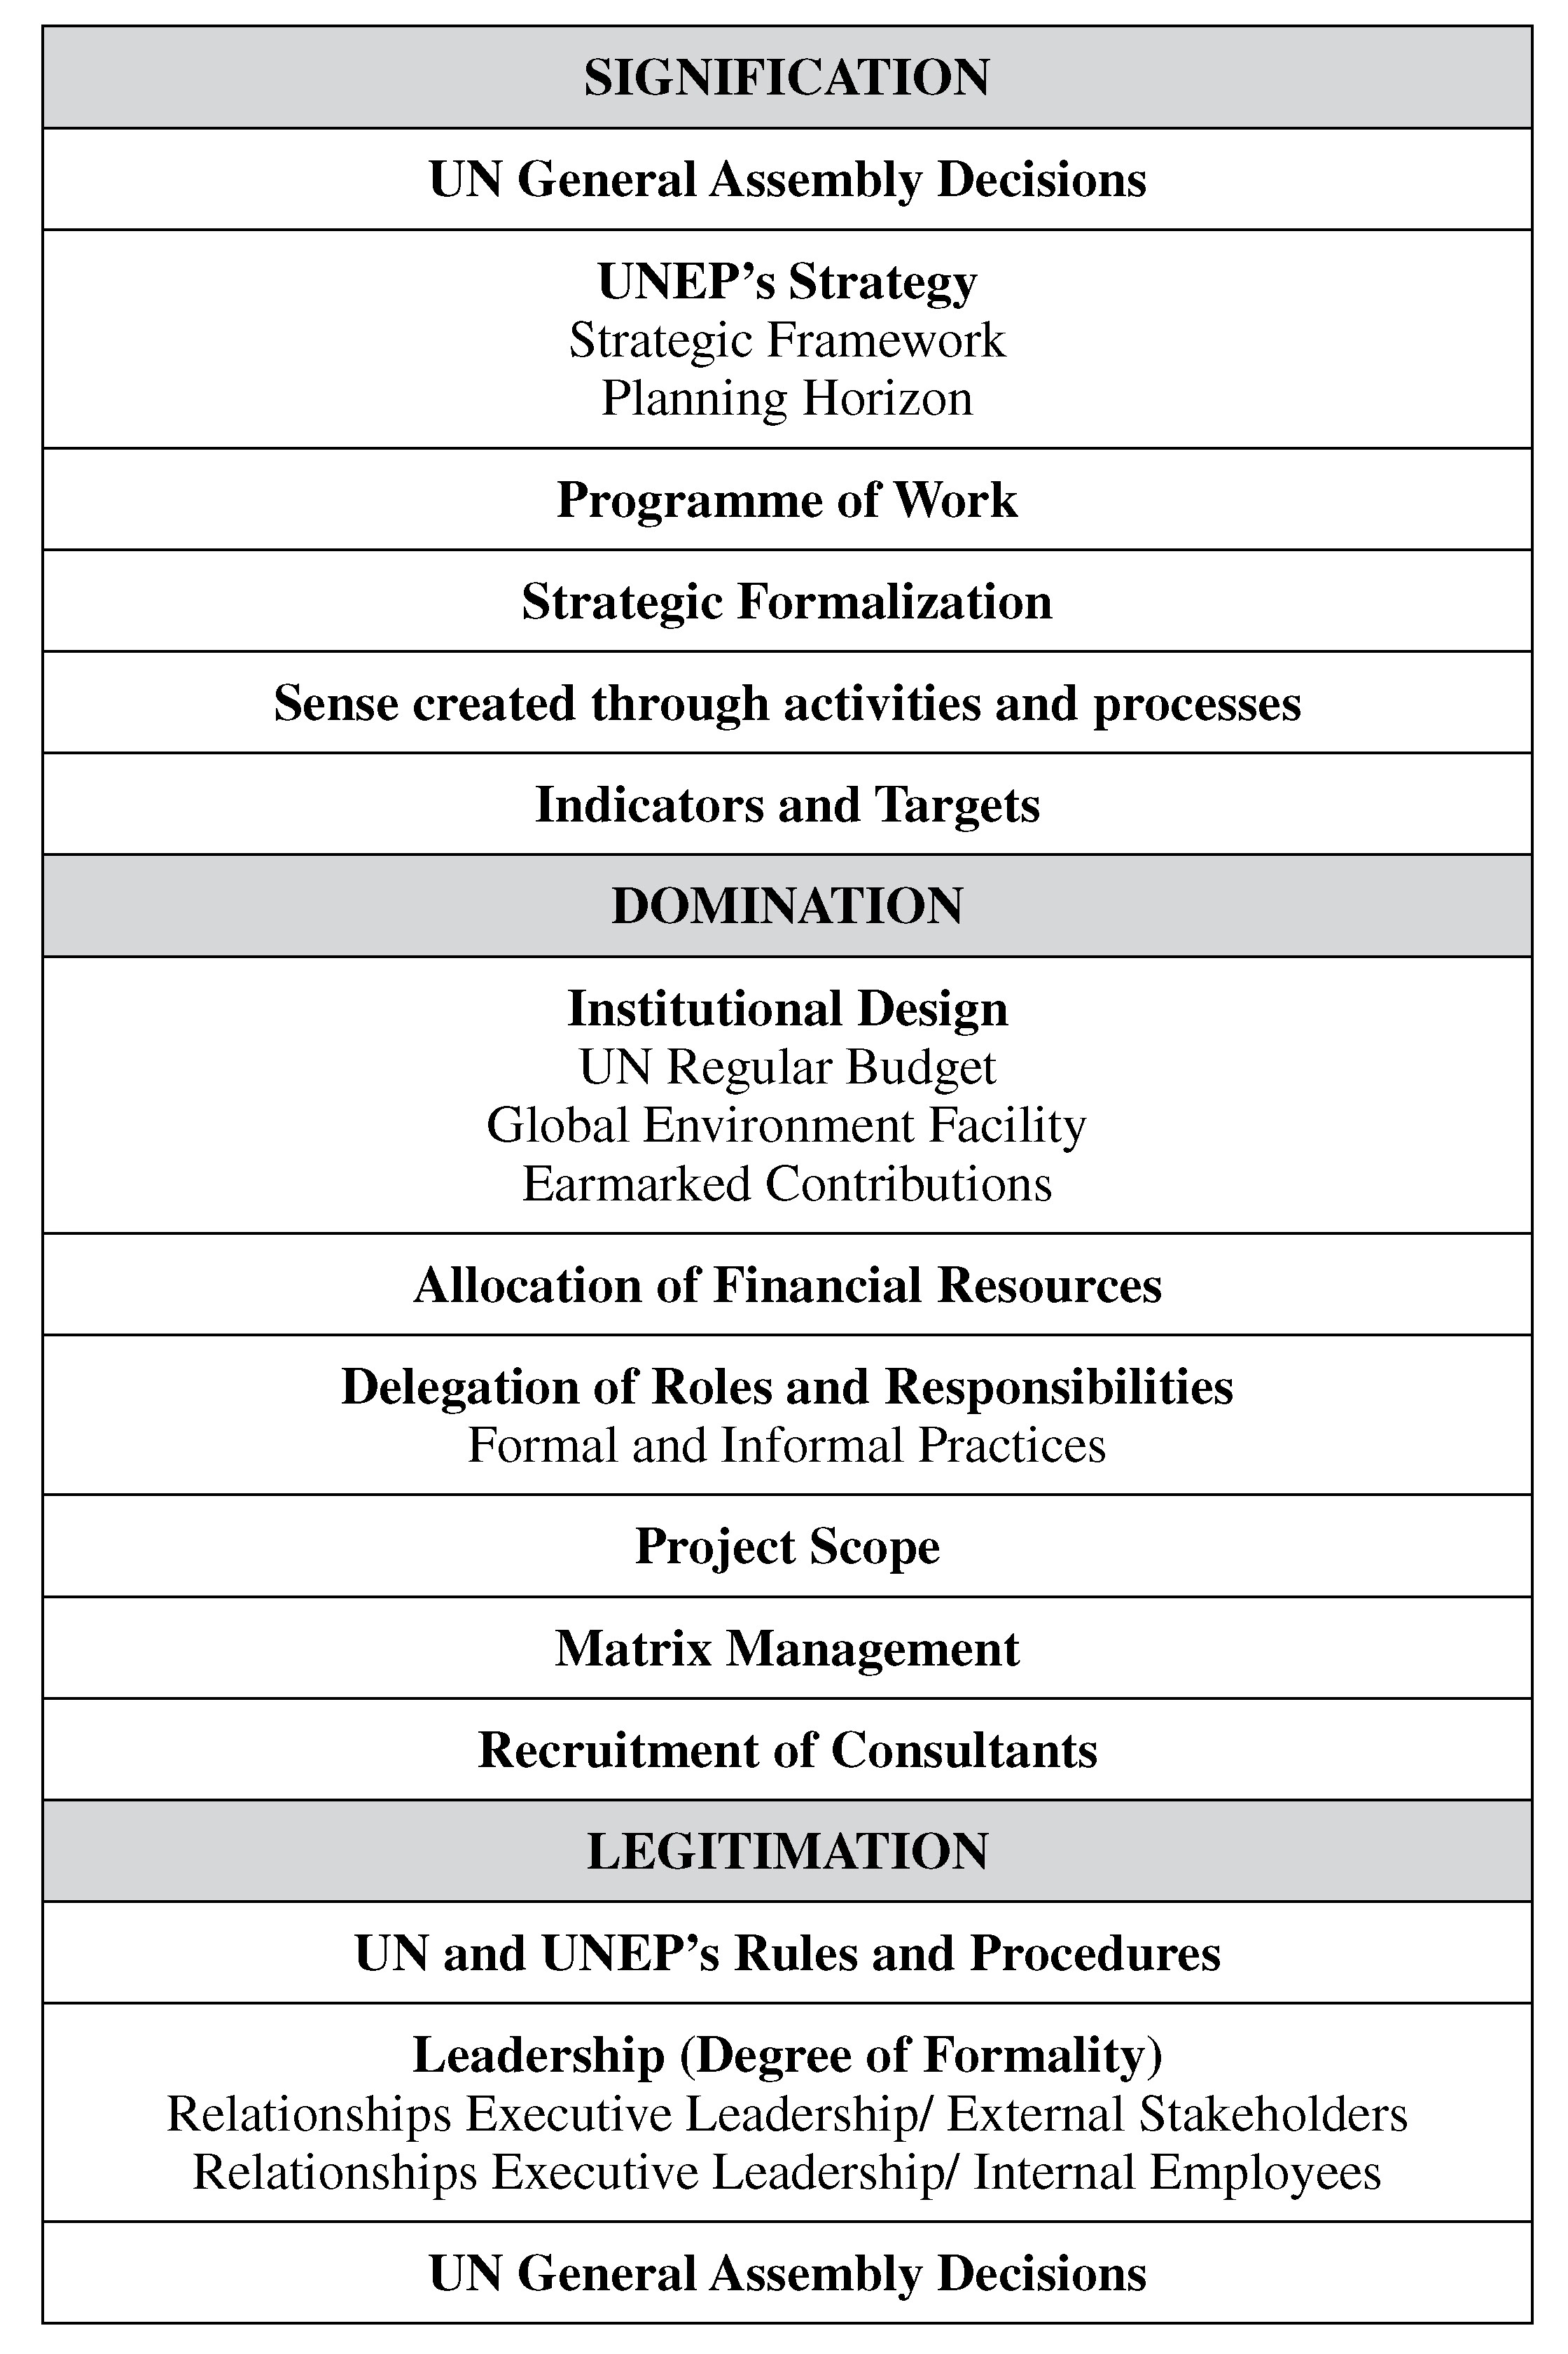 The United Nations Environment Programme Paradox: External versus